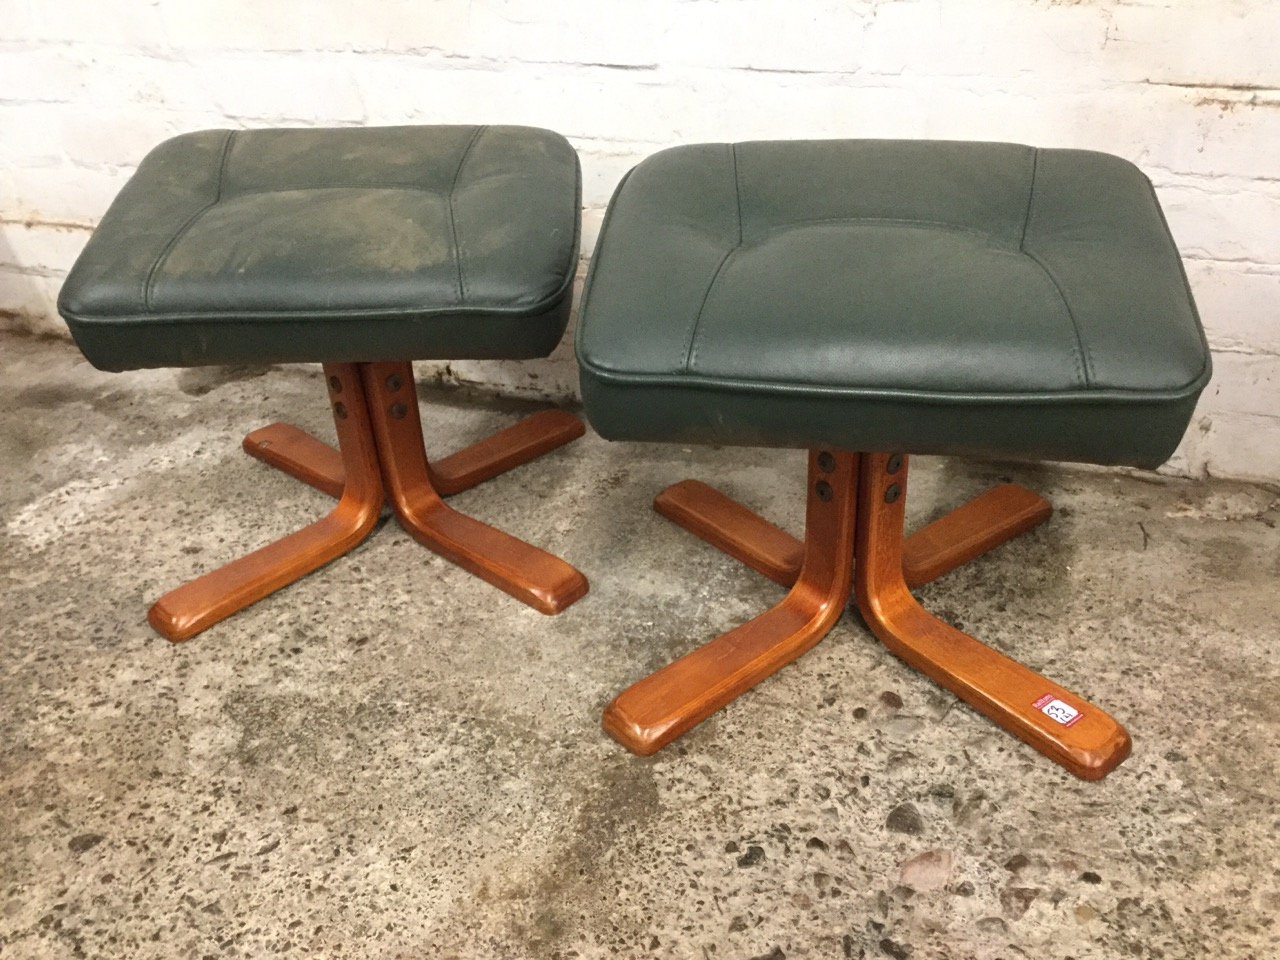 Lot 53 - A pair of contemporary rectangular leather upholstered stools, with angled panel stitched tops on